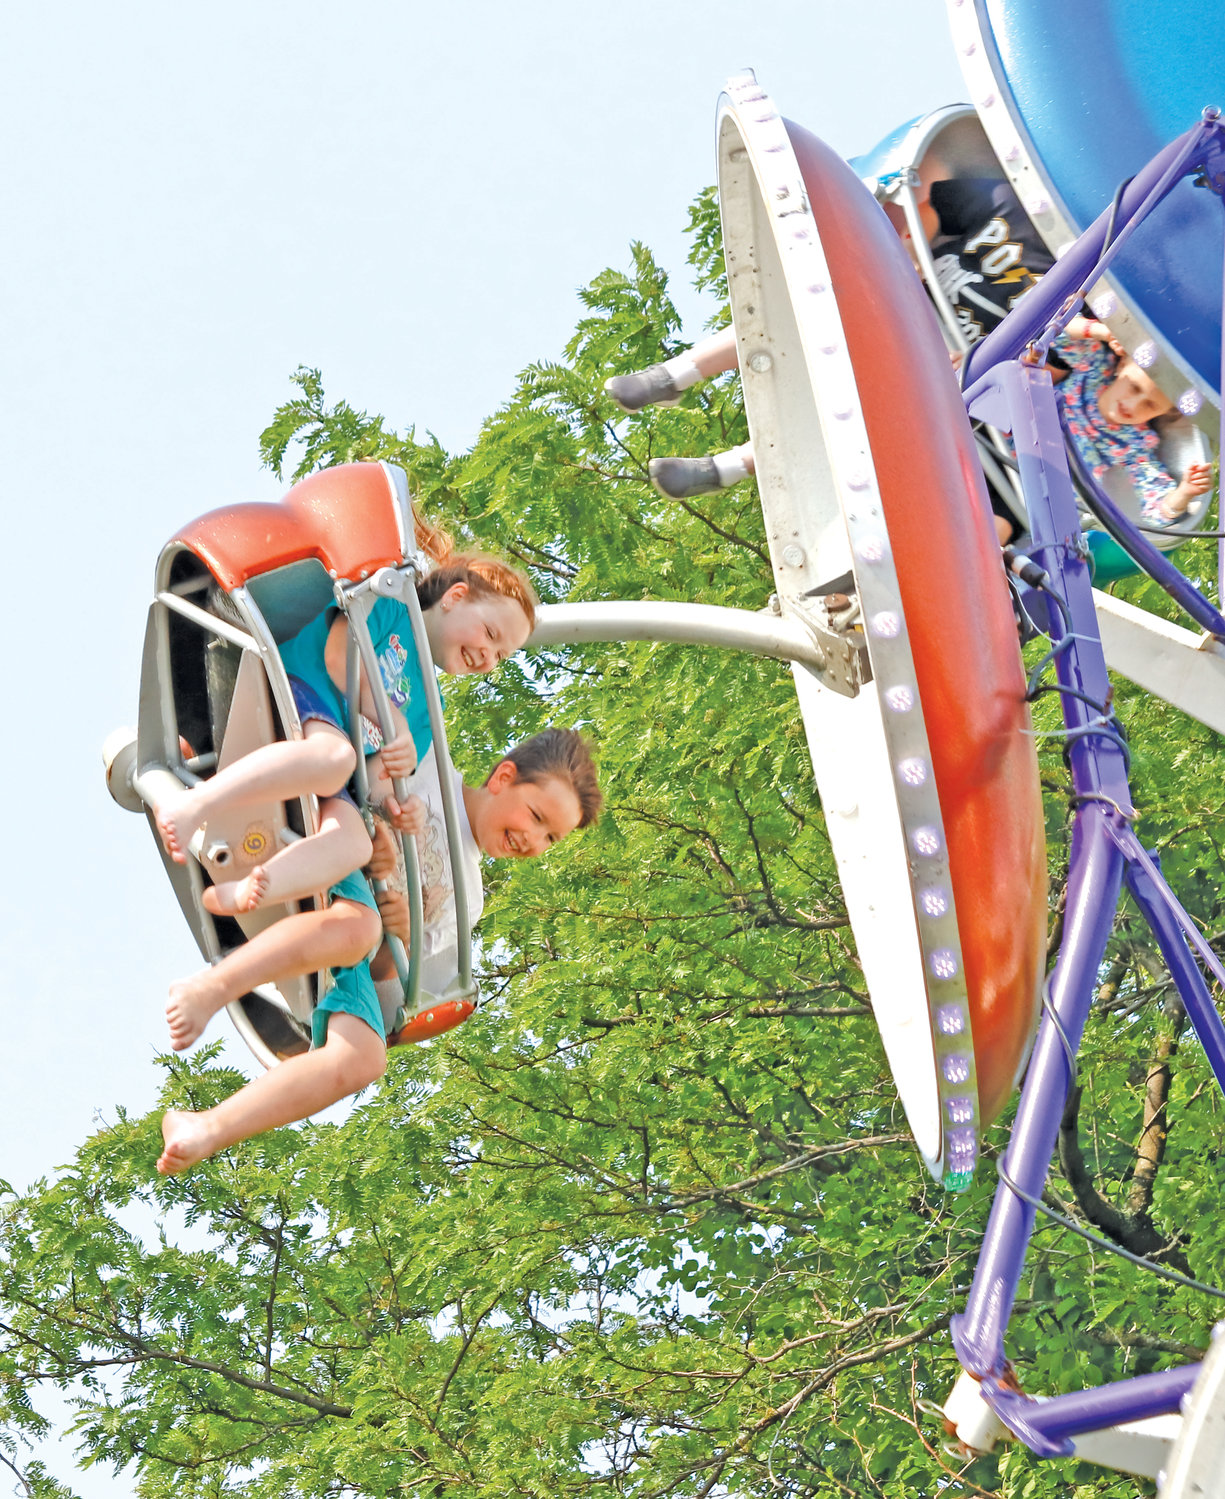 The Paratrooper ride gave Madeline Piper, 9, and Aiden Piper, 8, a great view of the festival.